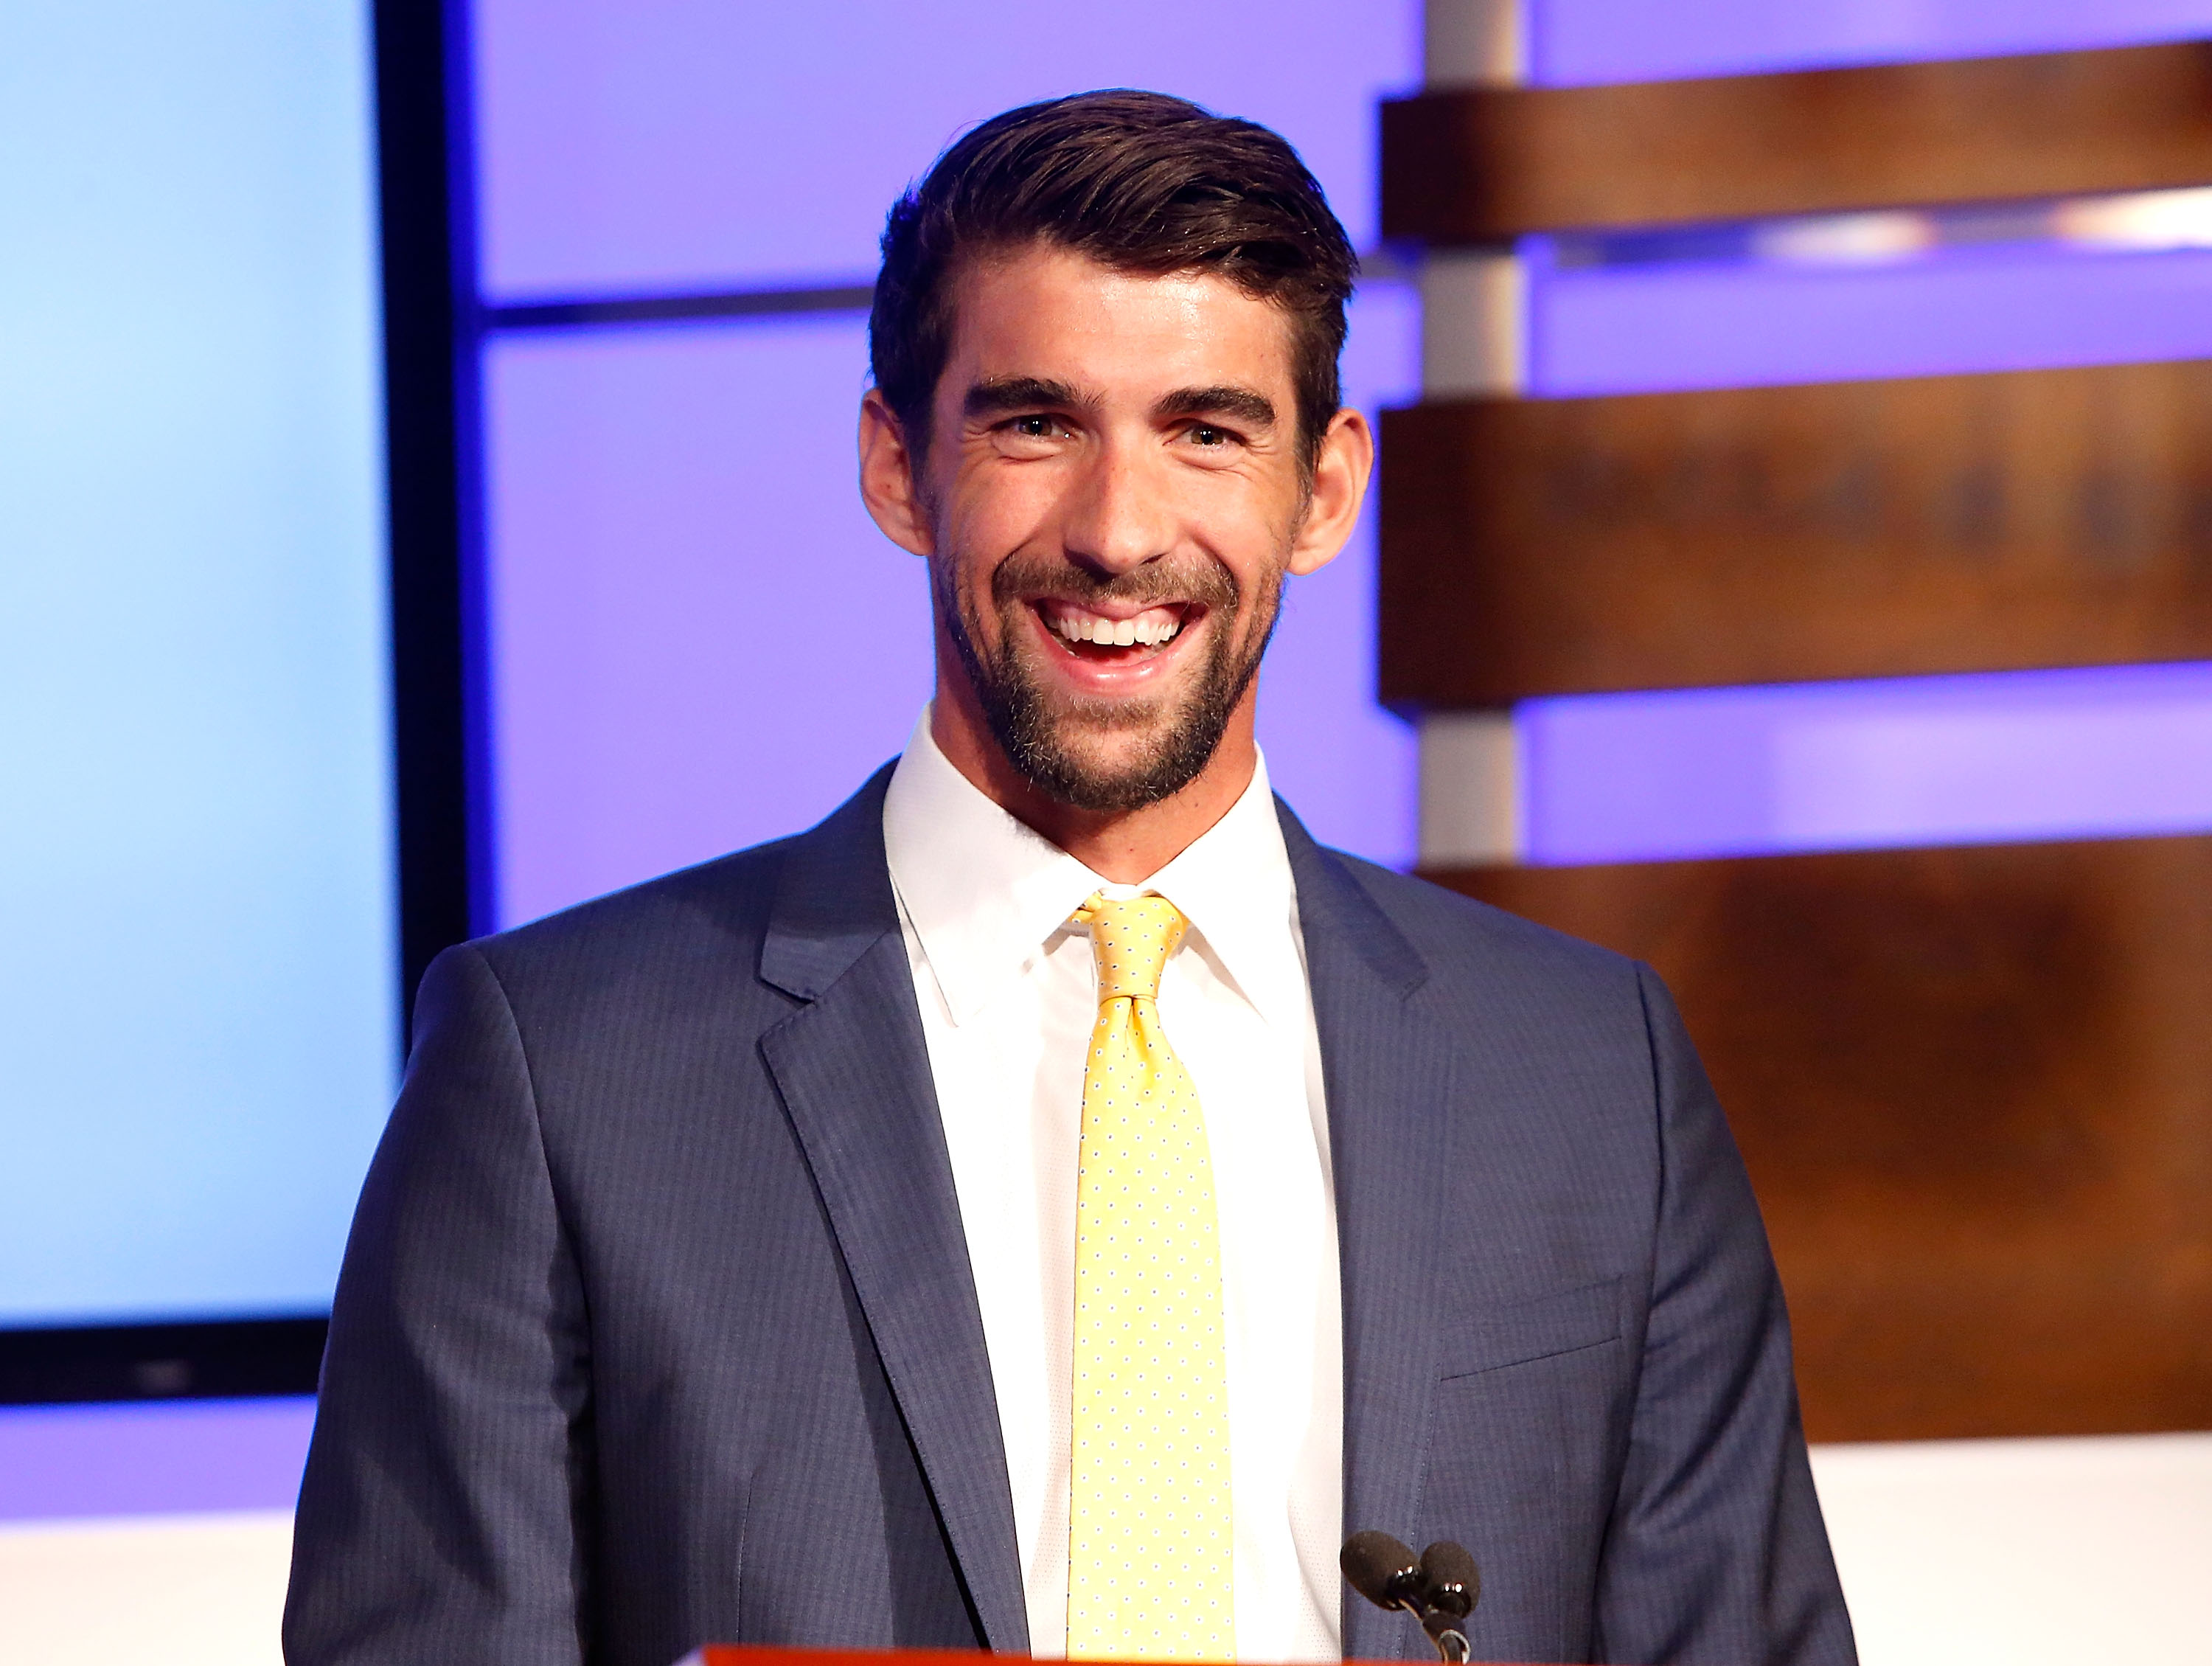 Swimmer Michael Phelps speaks at the  National Children's Mental Health Awareness Day event at George Washington University on May 4, 2017 in Washington, DC.